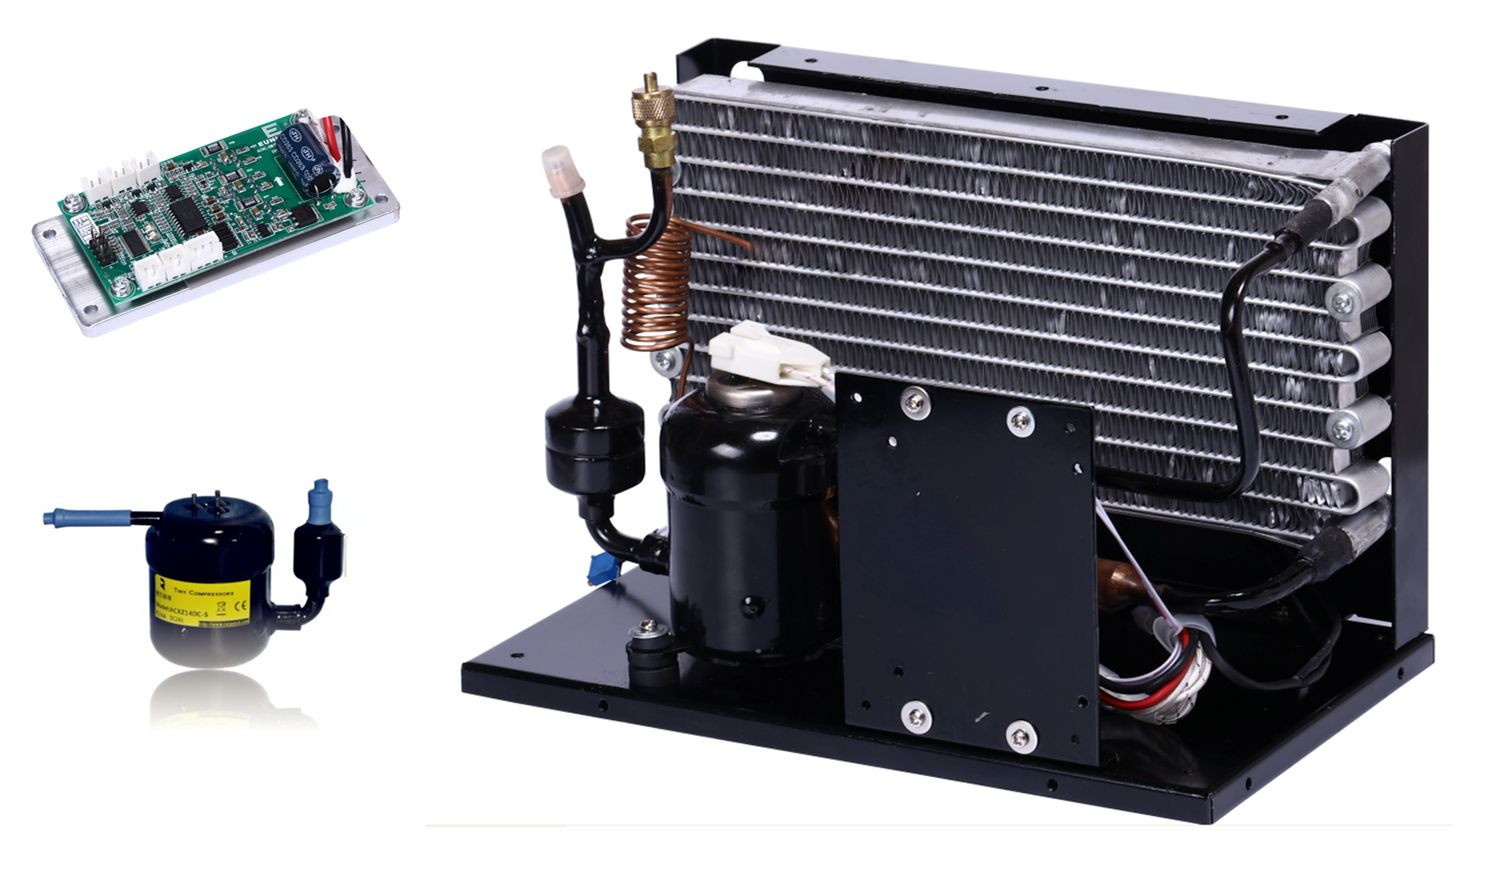 The Smallest Portable Powerful Dc Compressor Condensing Unit Dc 12v 24v 48v Power C Refrigeration And Air Conditioning Battery Powered Air Conditioner Rv Hacks